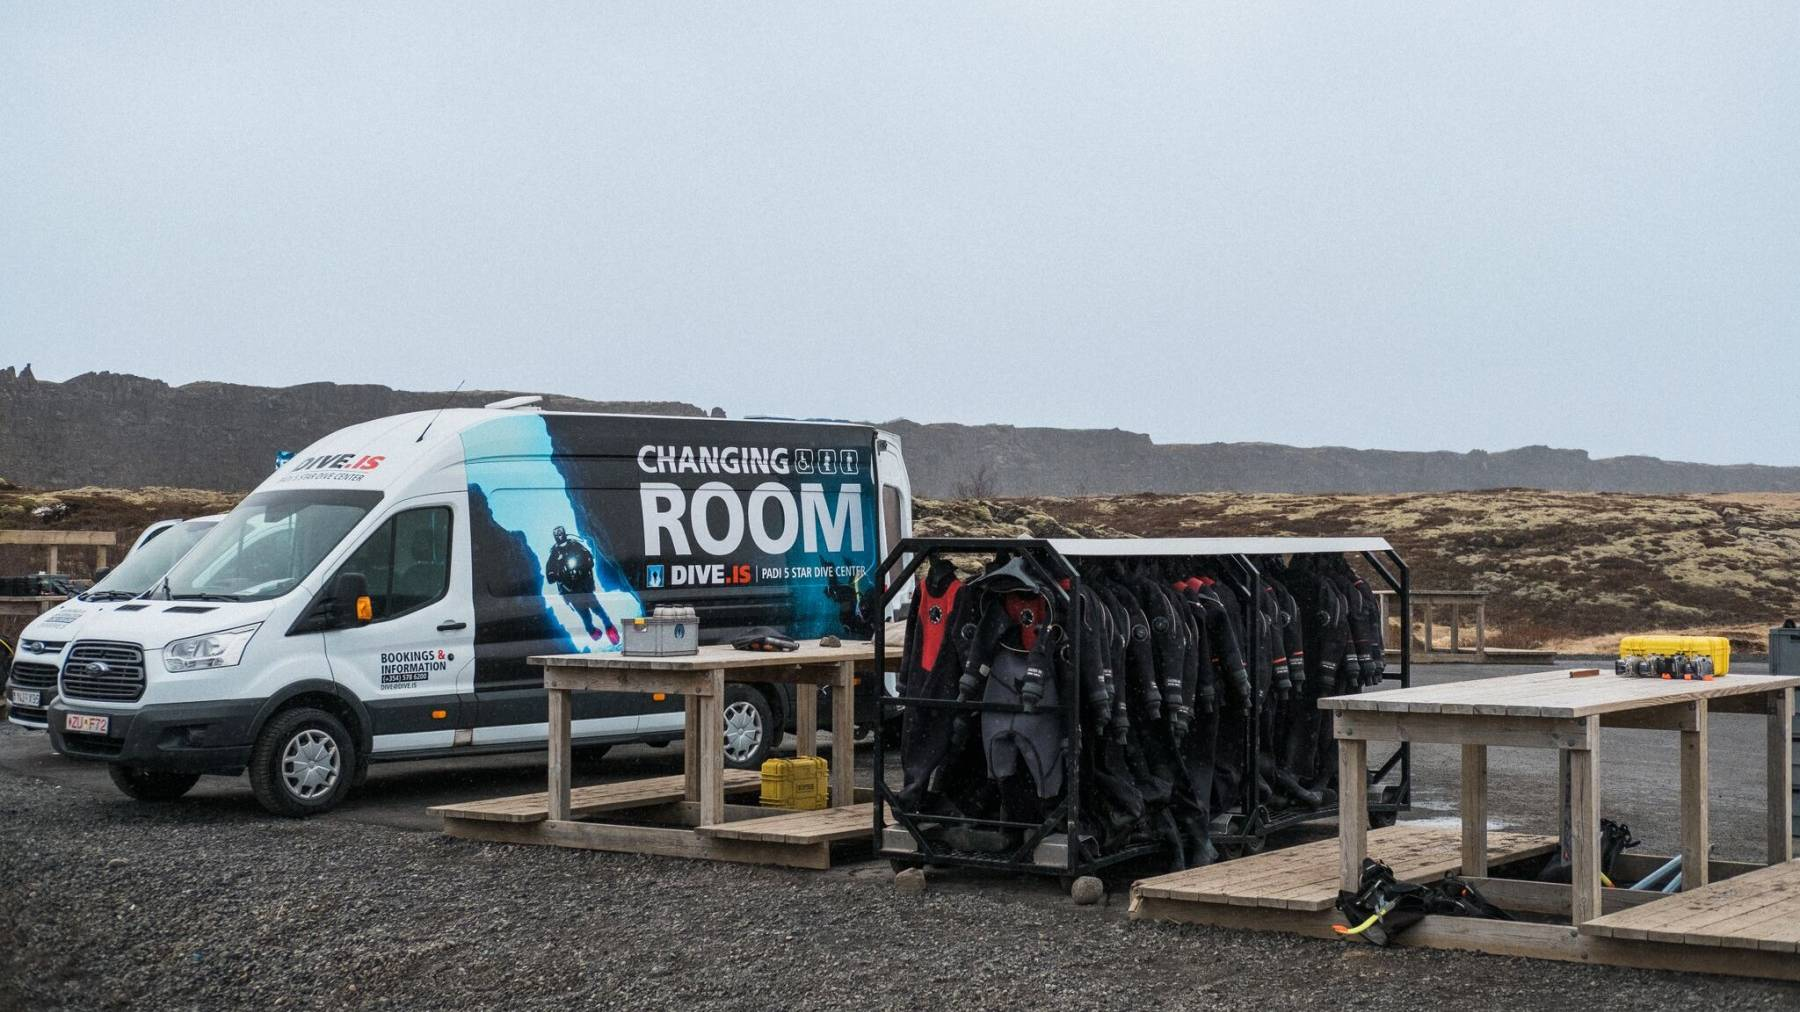 Changing Room at Silfra, Iceland